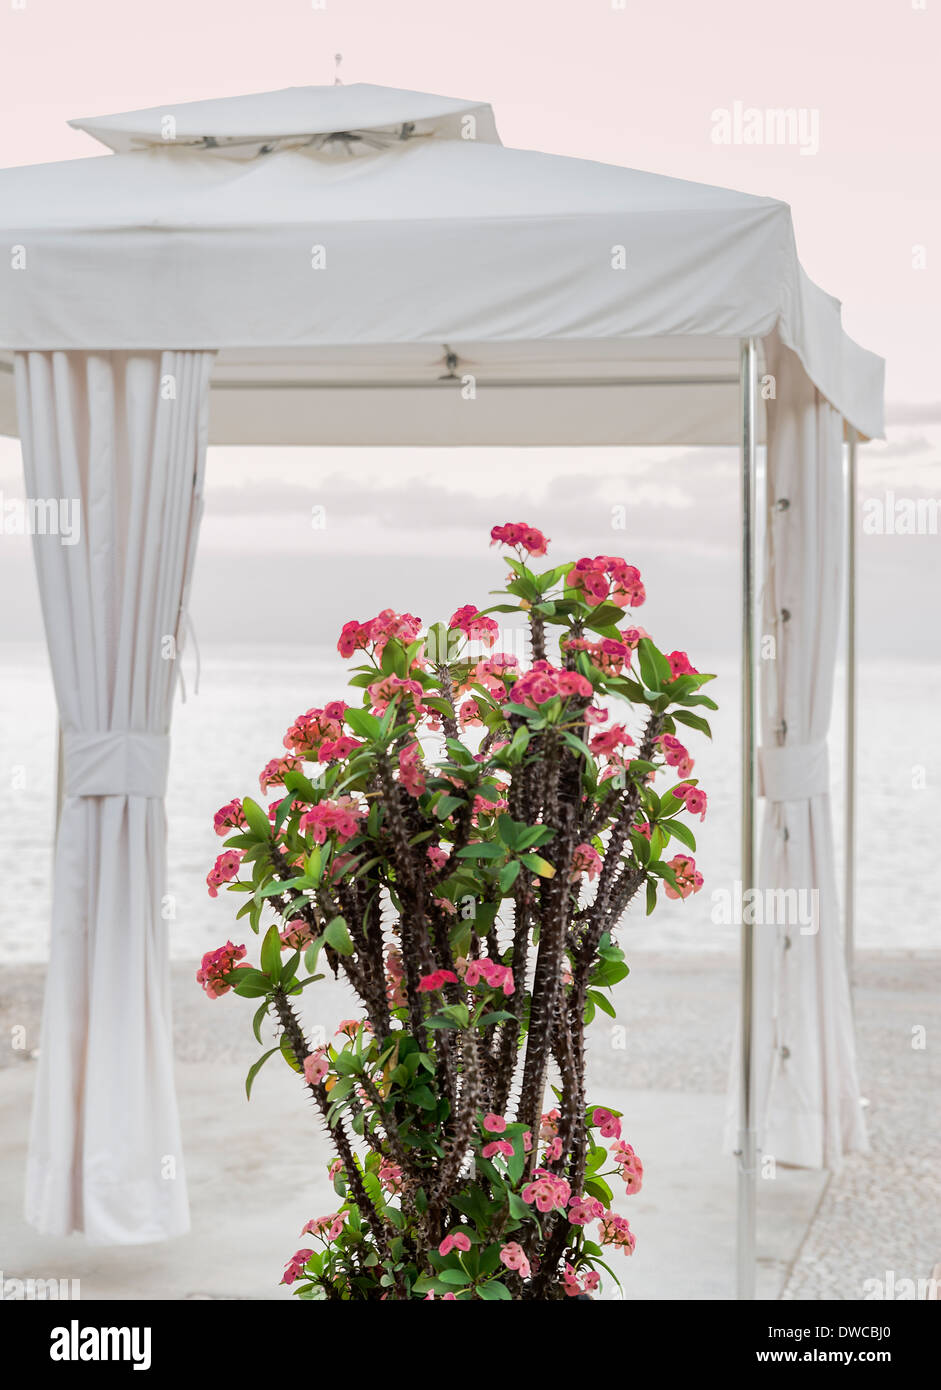 Spa tent with tropical flower overlooking the ocean. - Stock Image